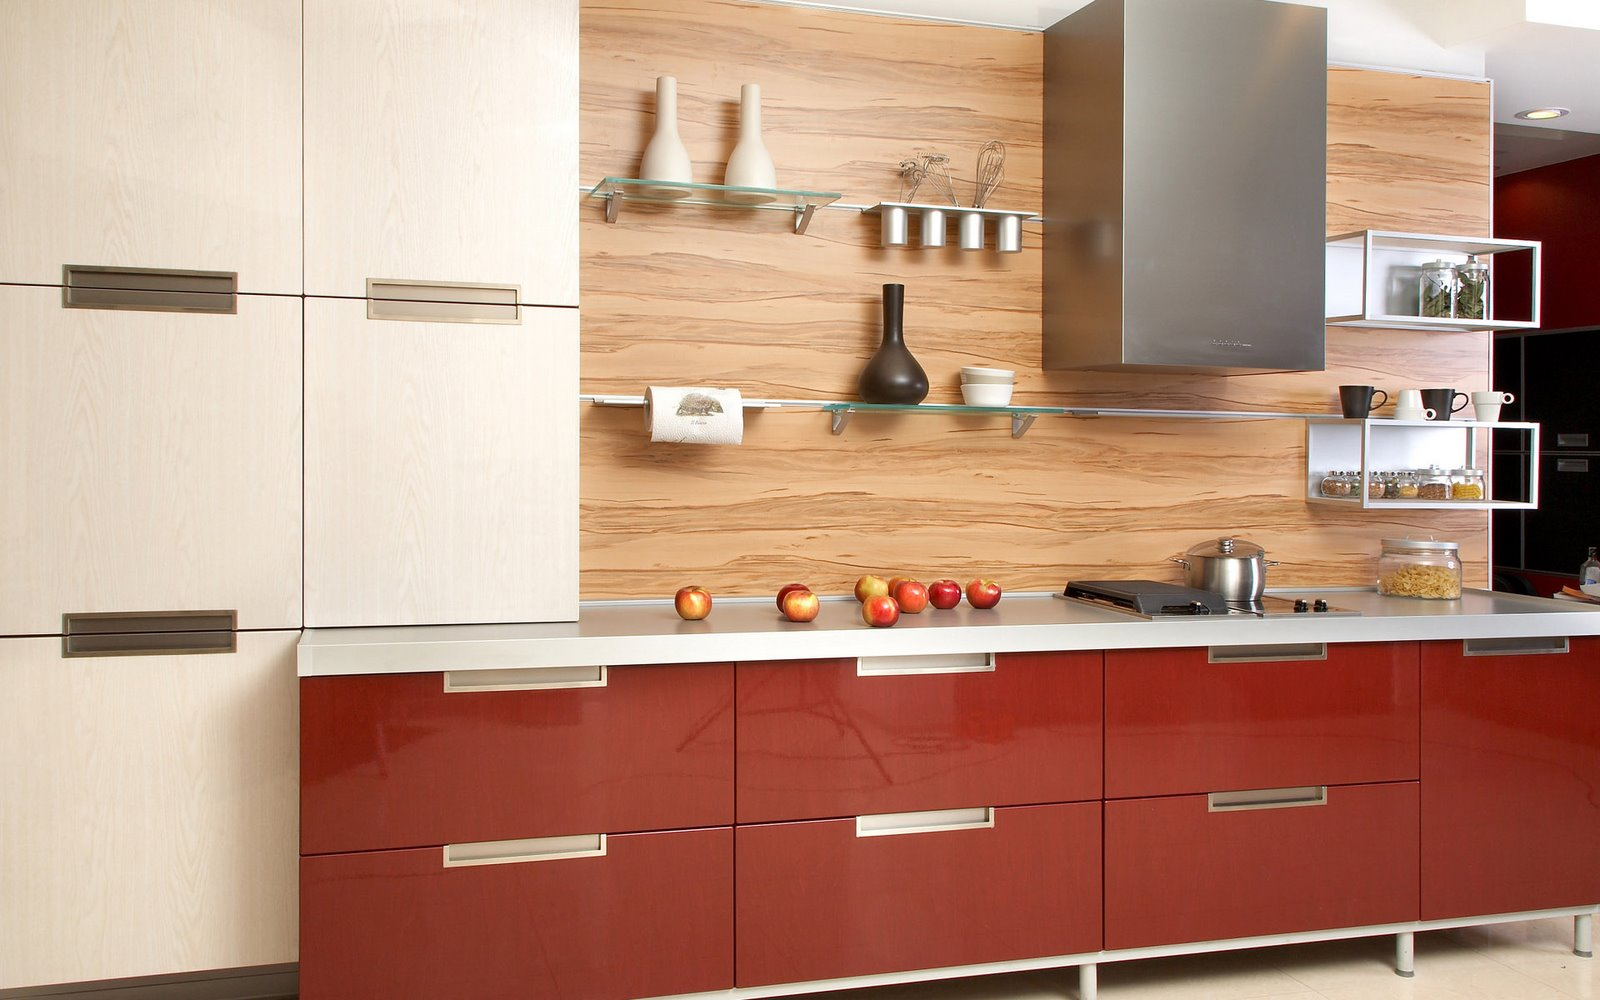 Modern wood kitchen design dream kitchens pinterest Modern design kitchen designs